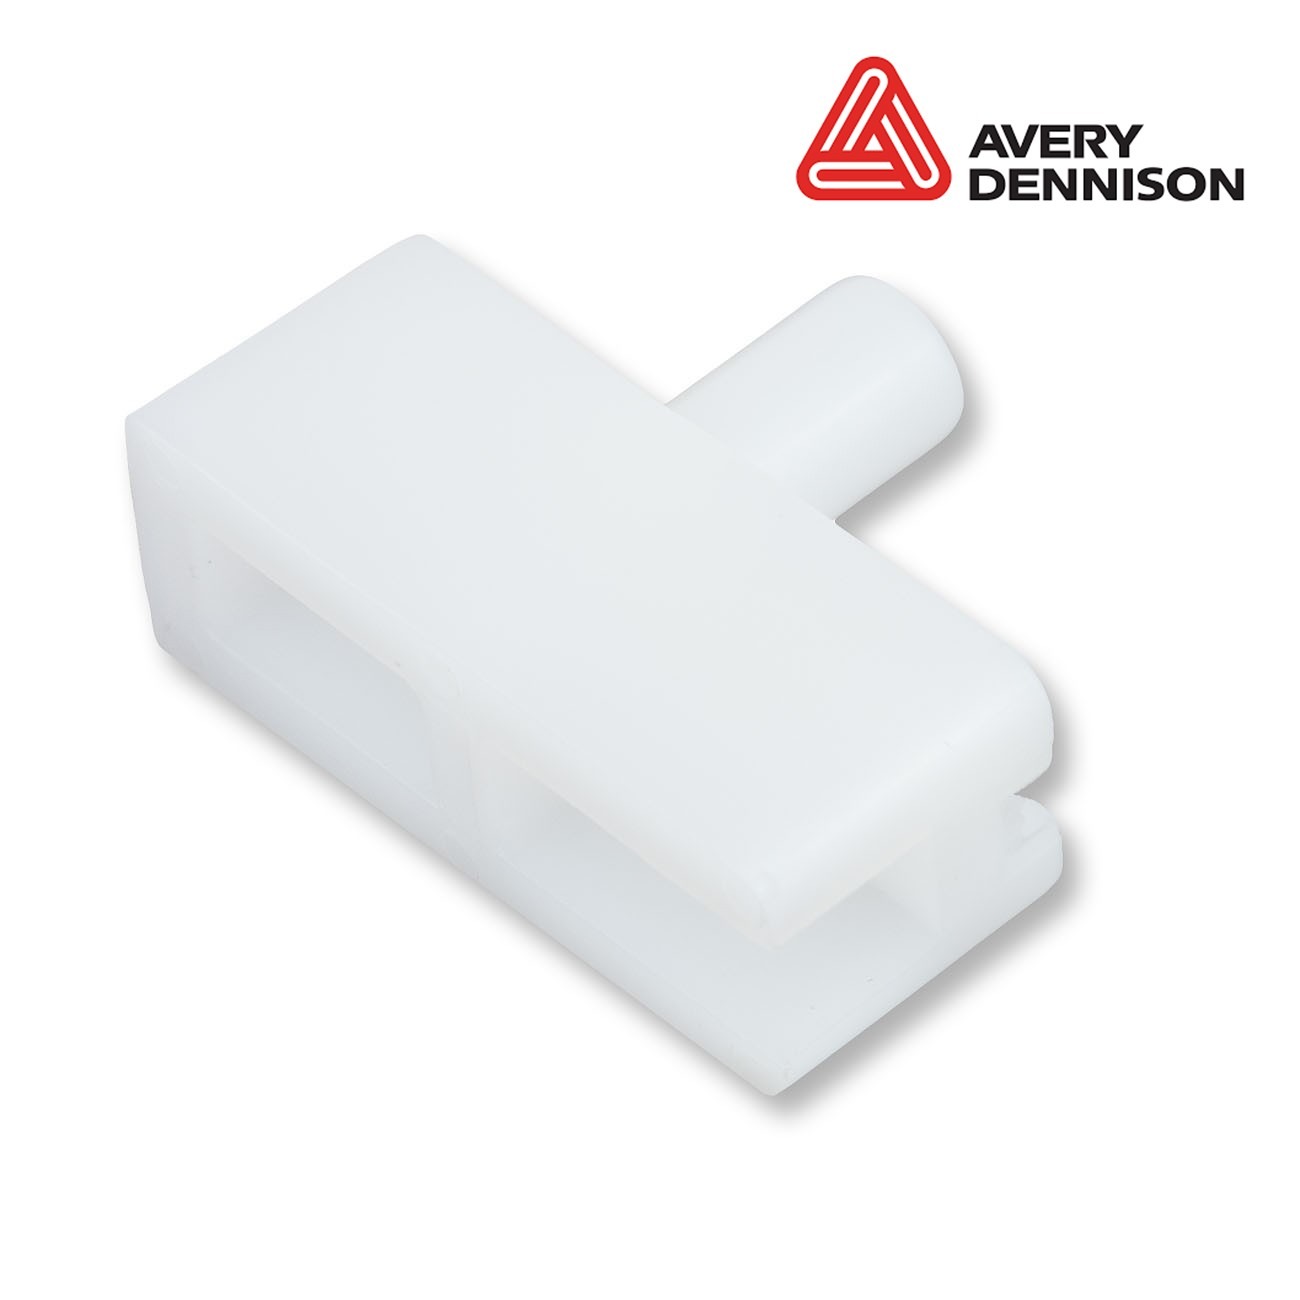 Hermosa plantillas averydennison composici n ejemplo de for Avery template 16281